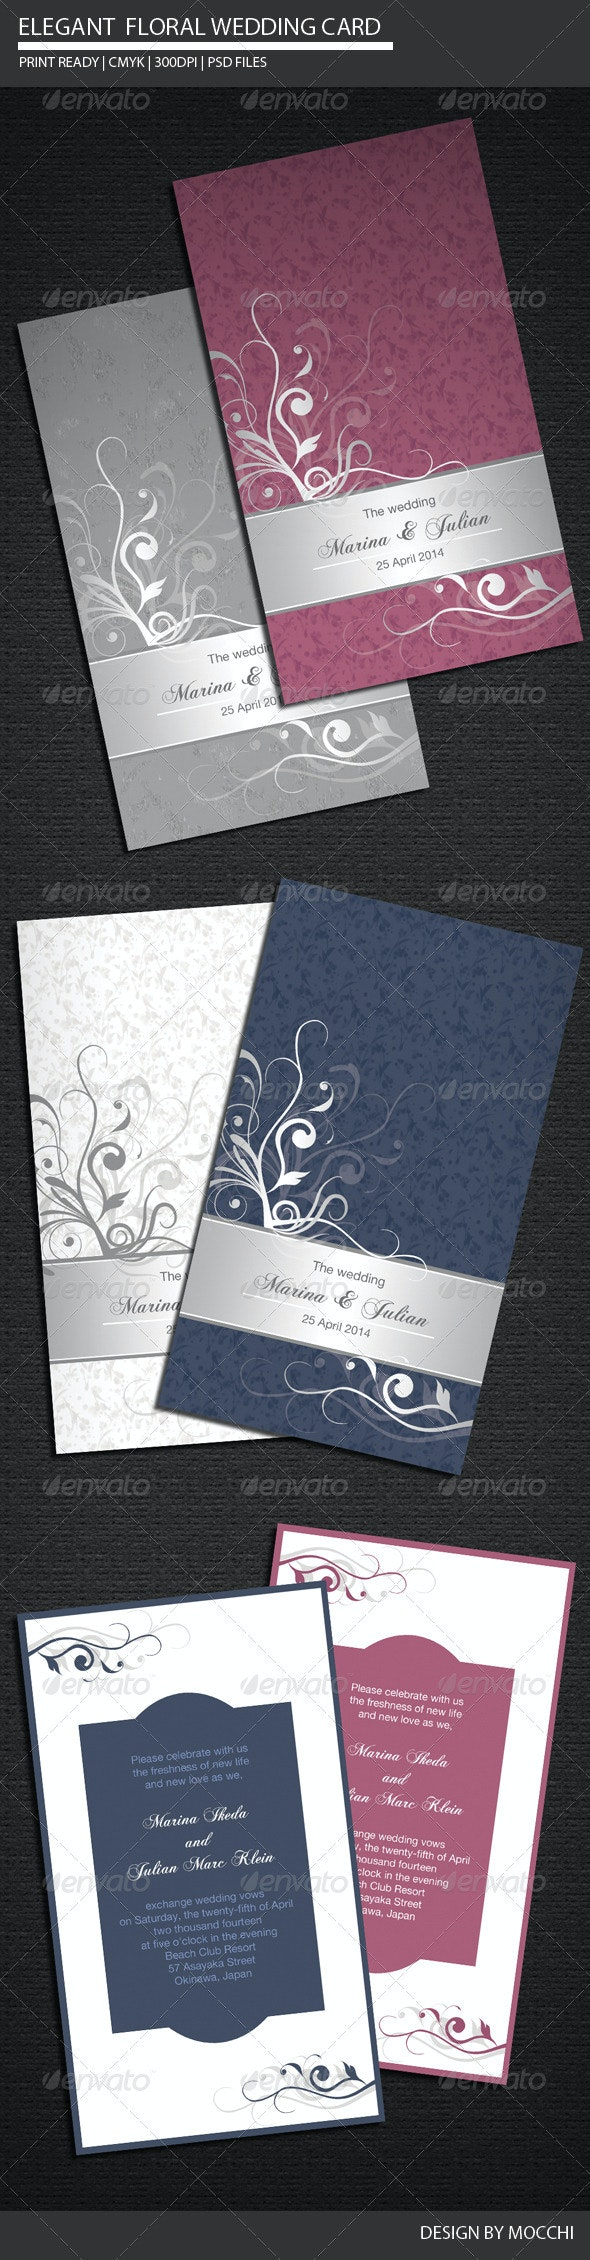 Elegant Floral Wedding Card - Weddings Cards & Invites